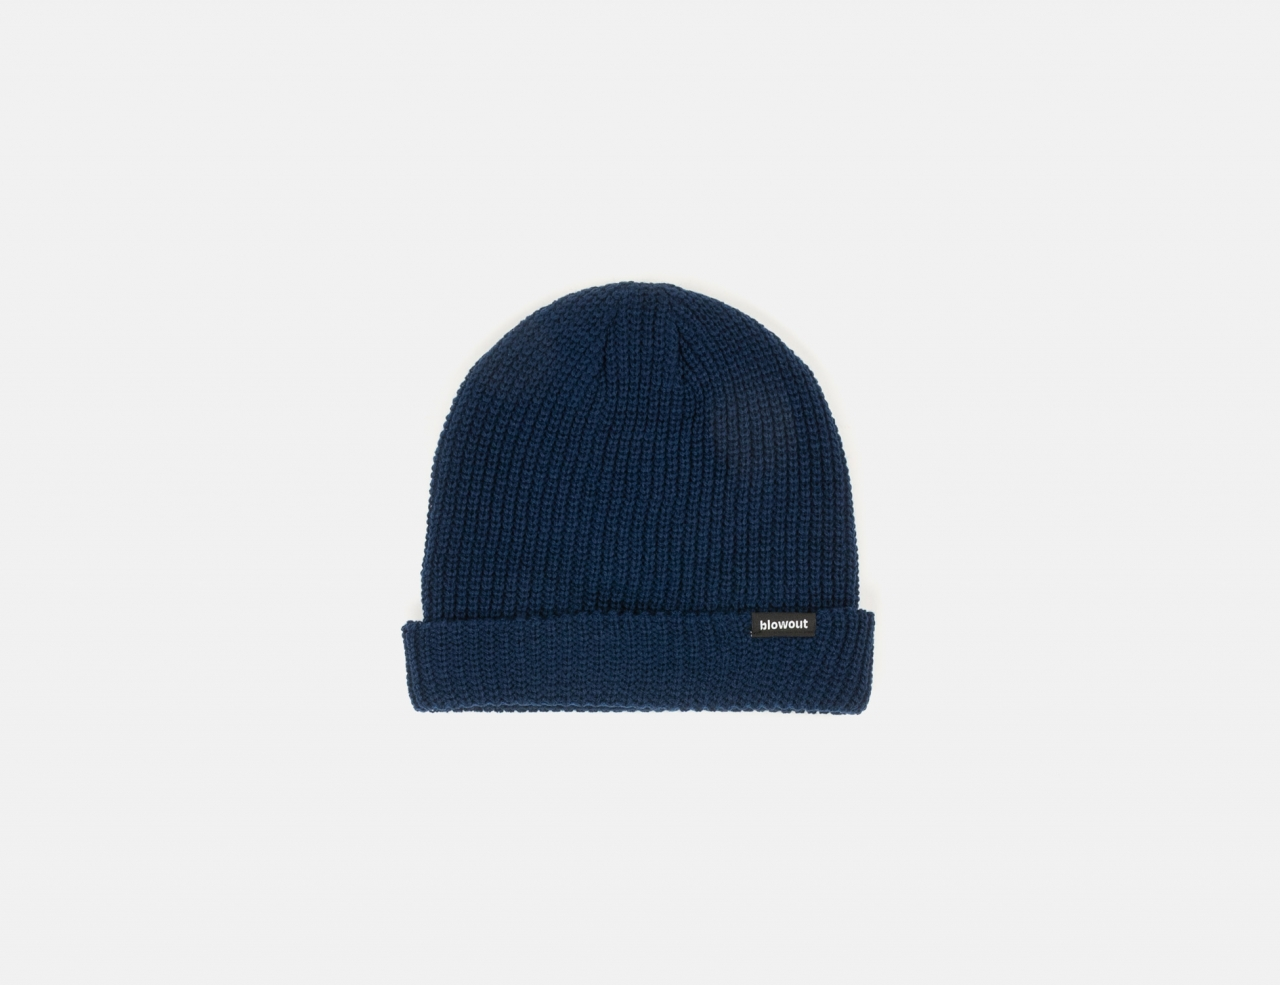 Blowout Fisherman Beanie - Navy